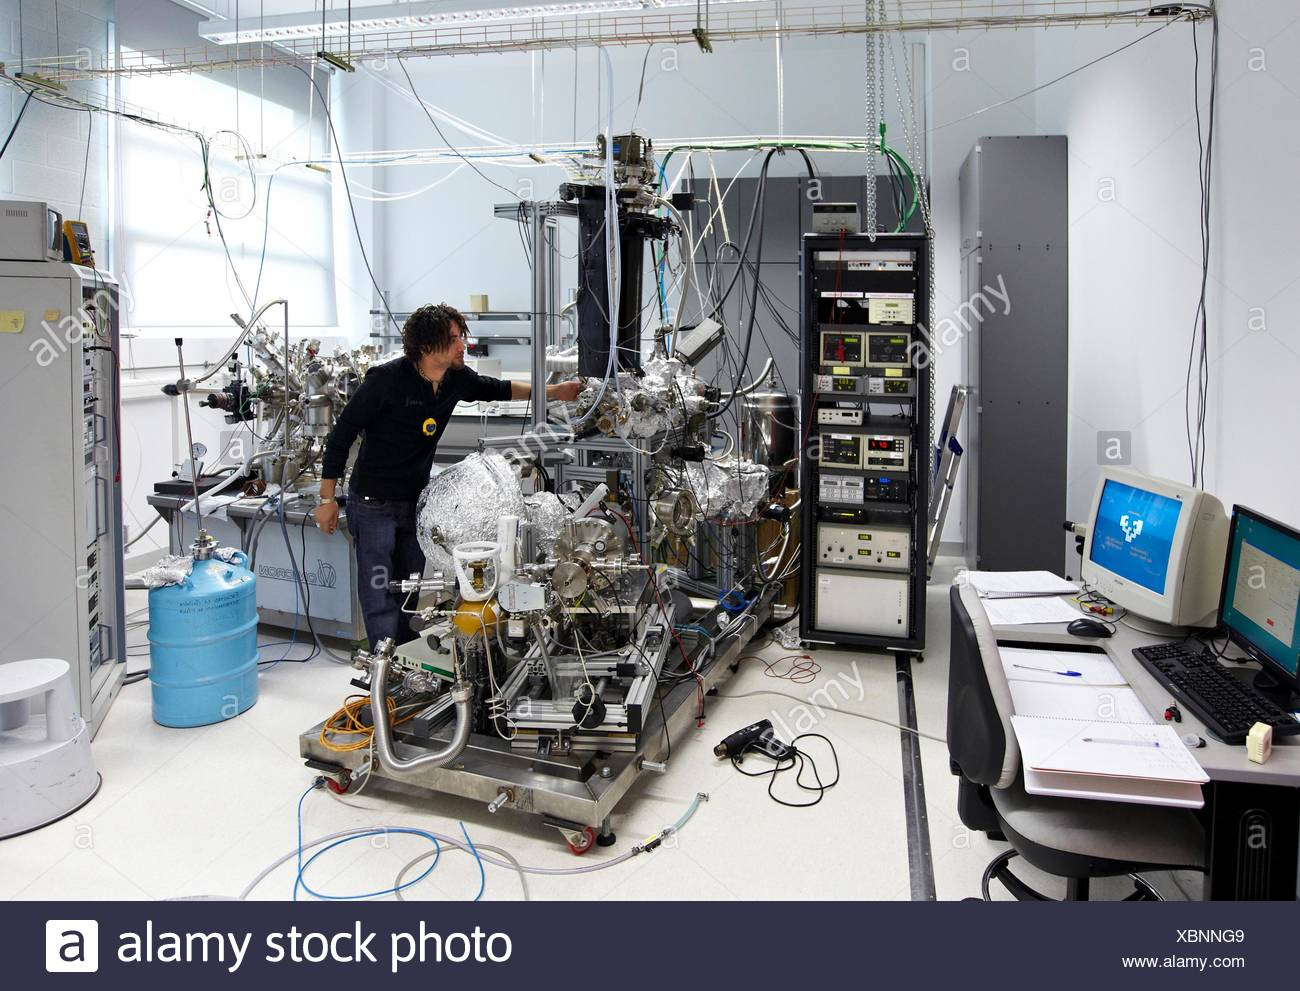 UHV (ultra-high vacuum) chamber, Nanophysics laboratory, Materials Physics Center is a joint center of the Spanish Scientific - Stock Image